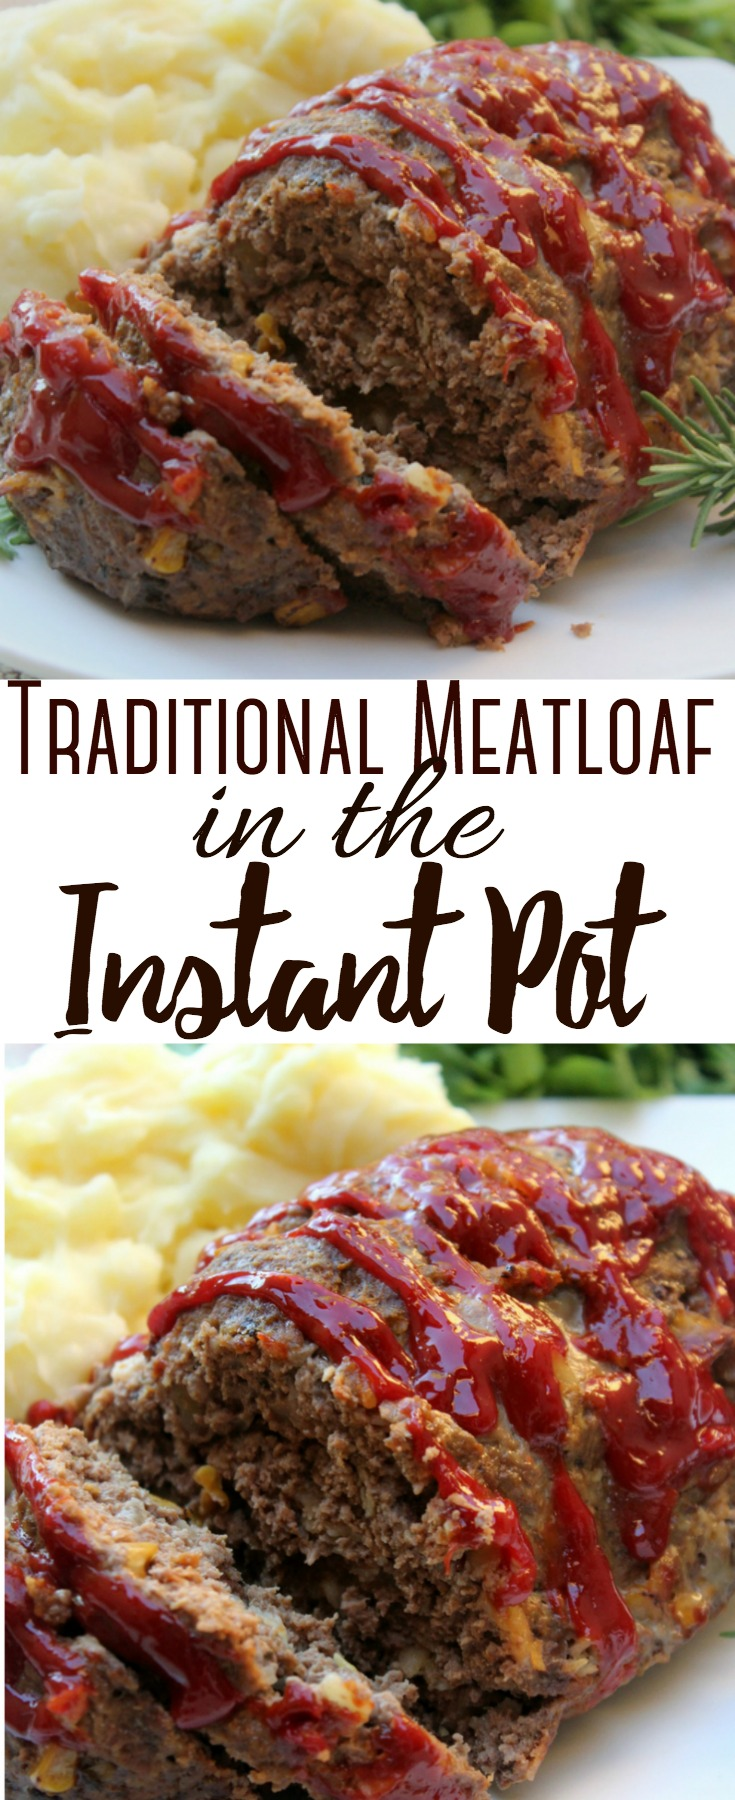 Traditional Meatloaf in the Instant Pot